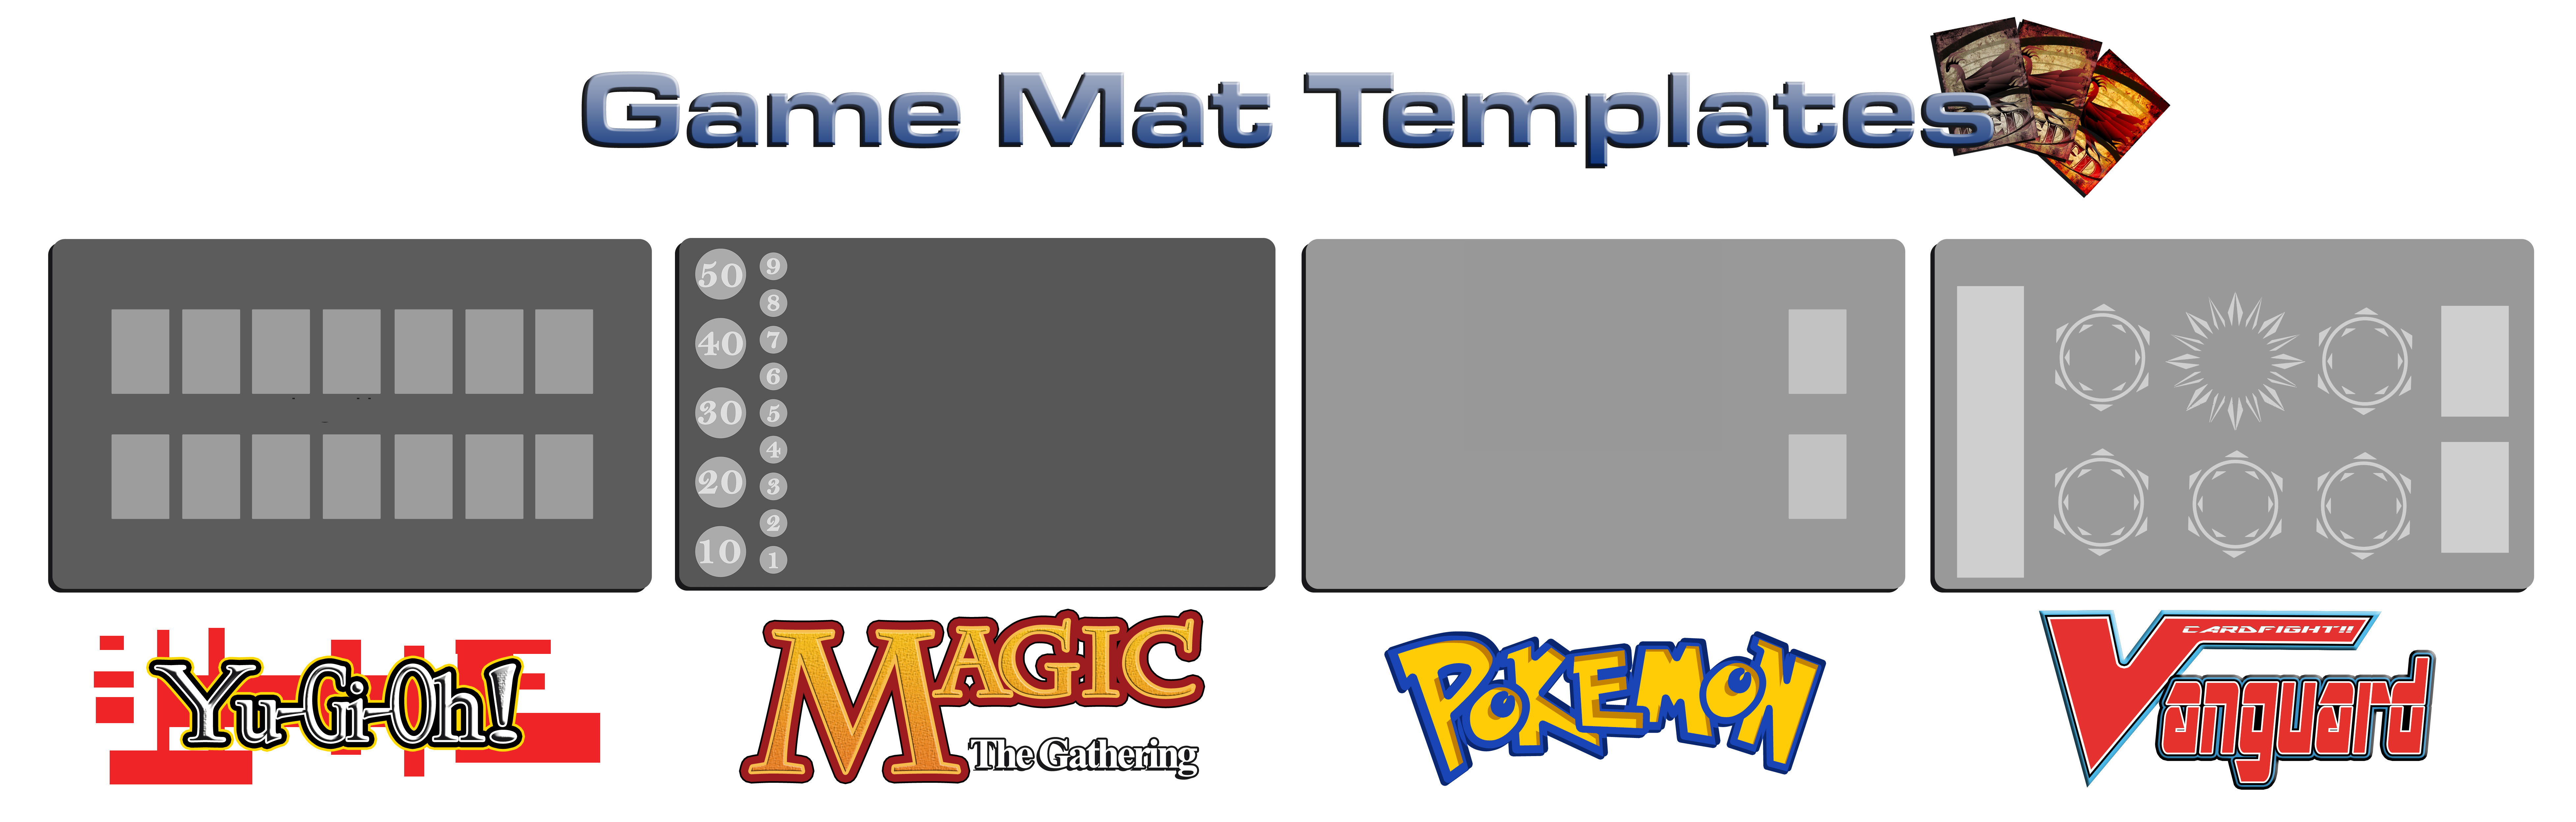 perfect yugioh mat template images professional resume examples